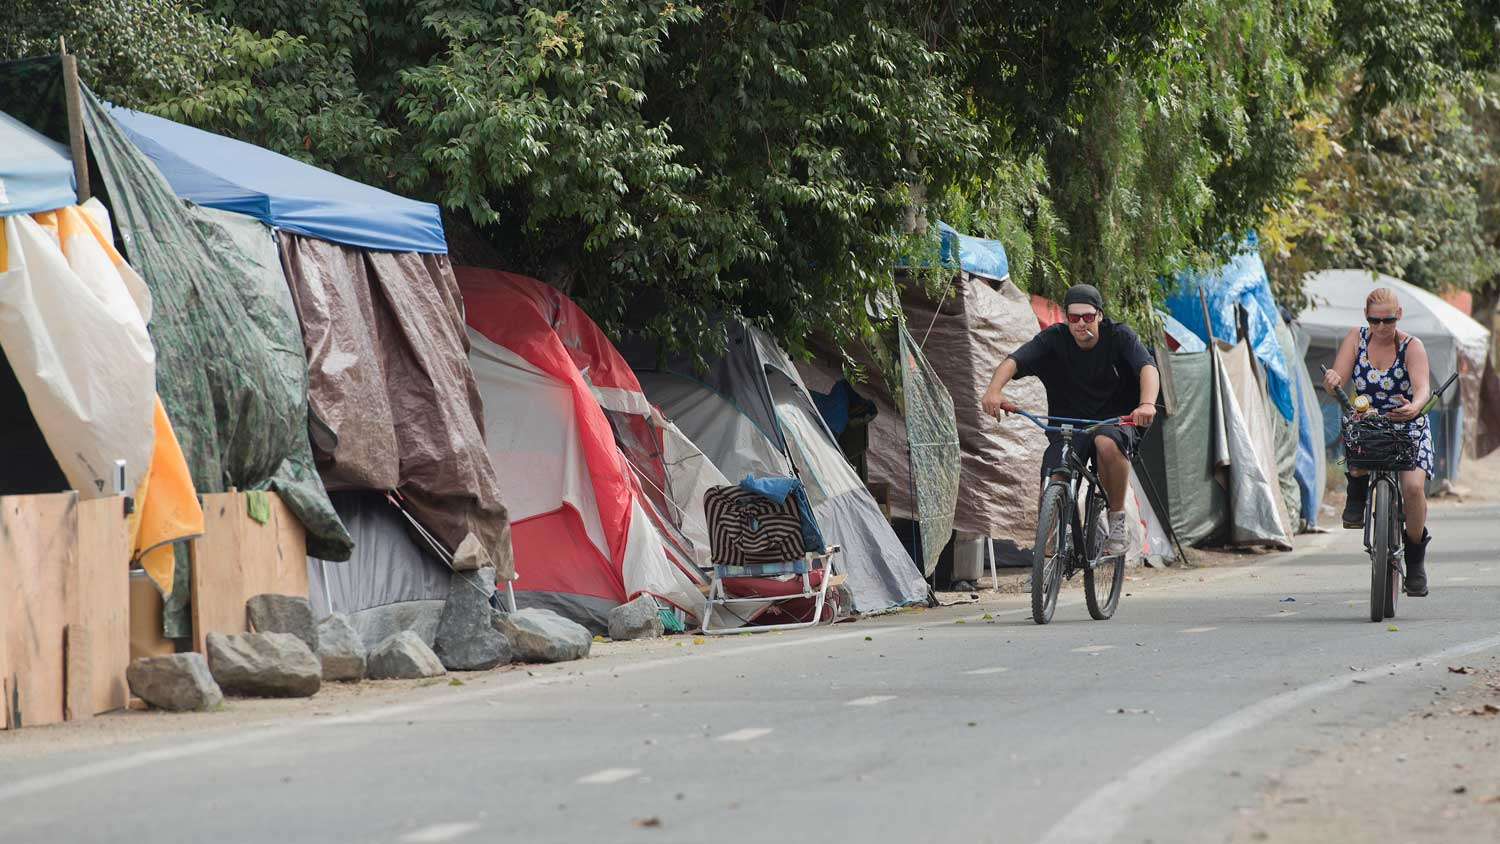 Santa Ana Wants County To Shelter Homeless People On